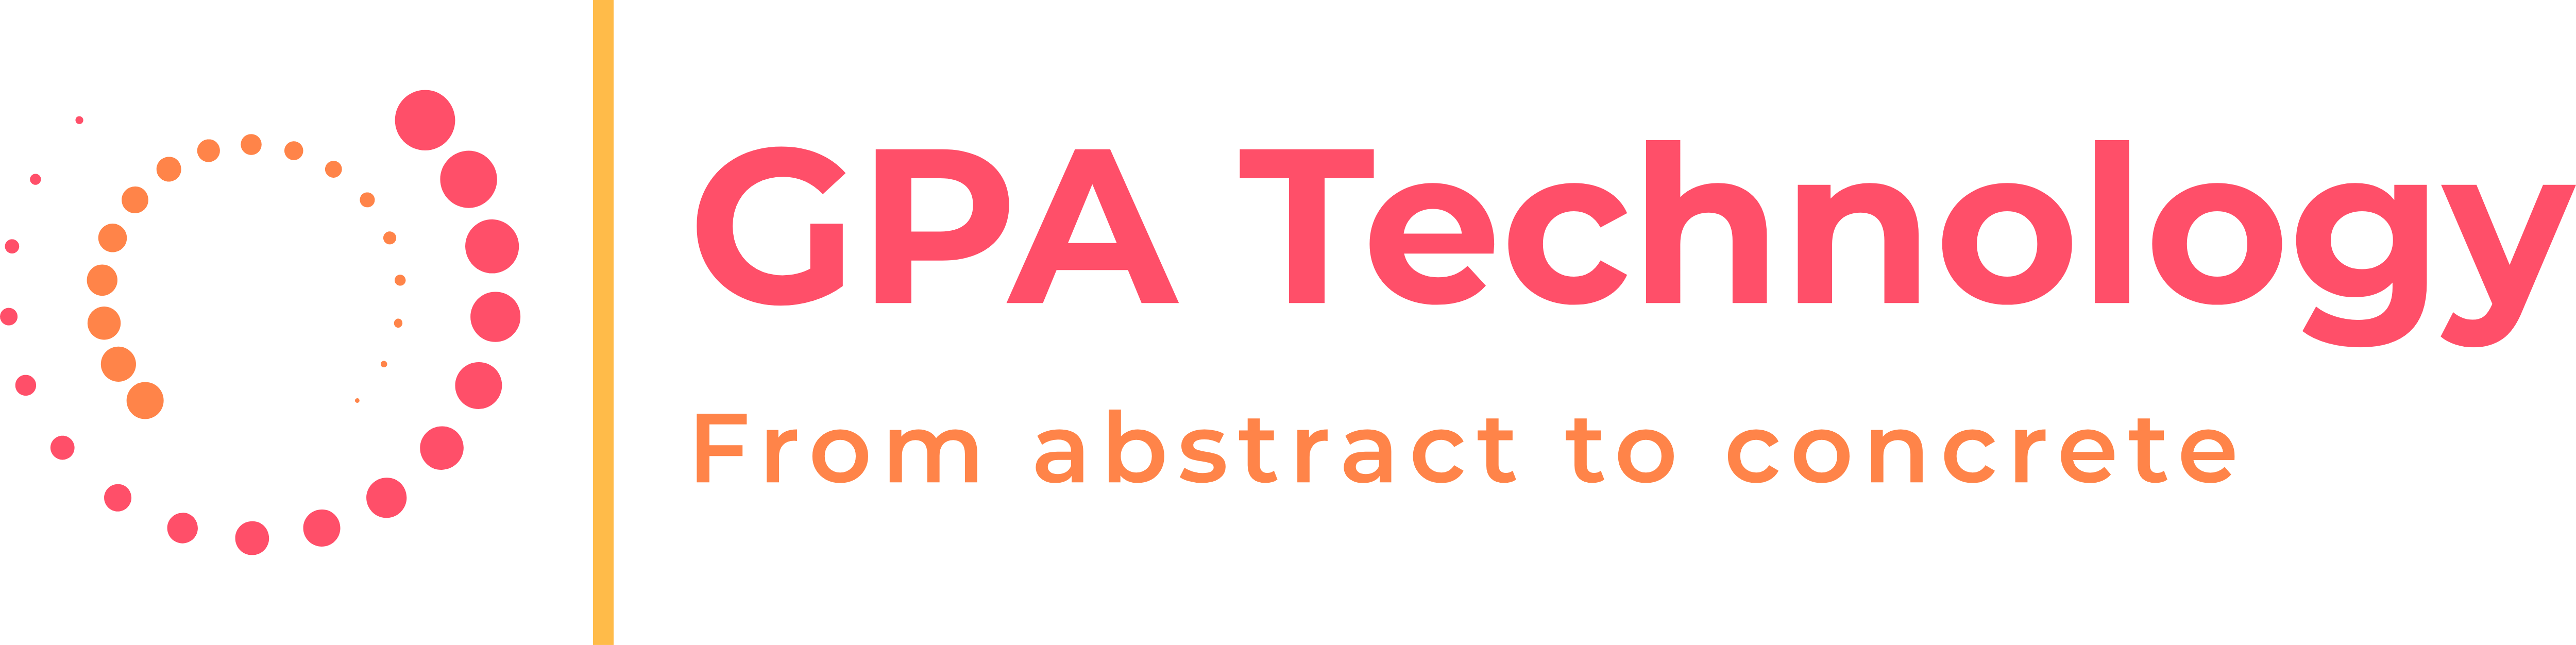 gpa-technology